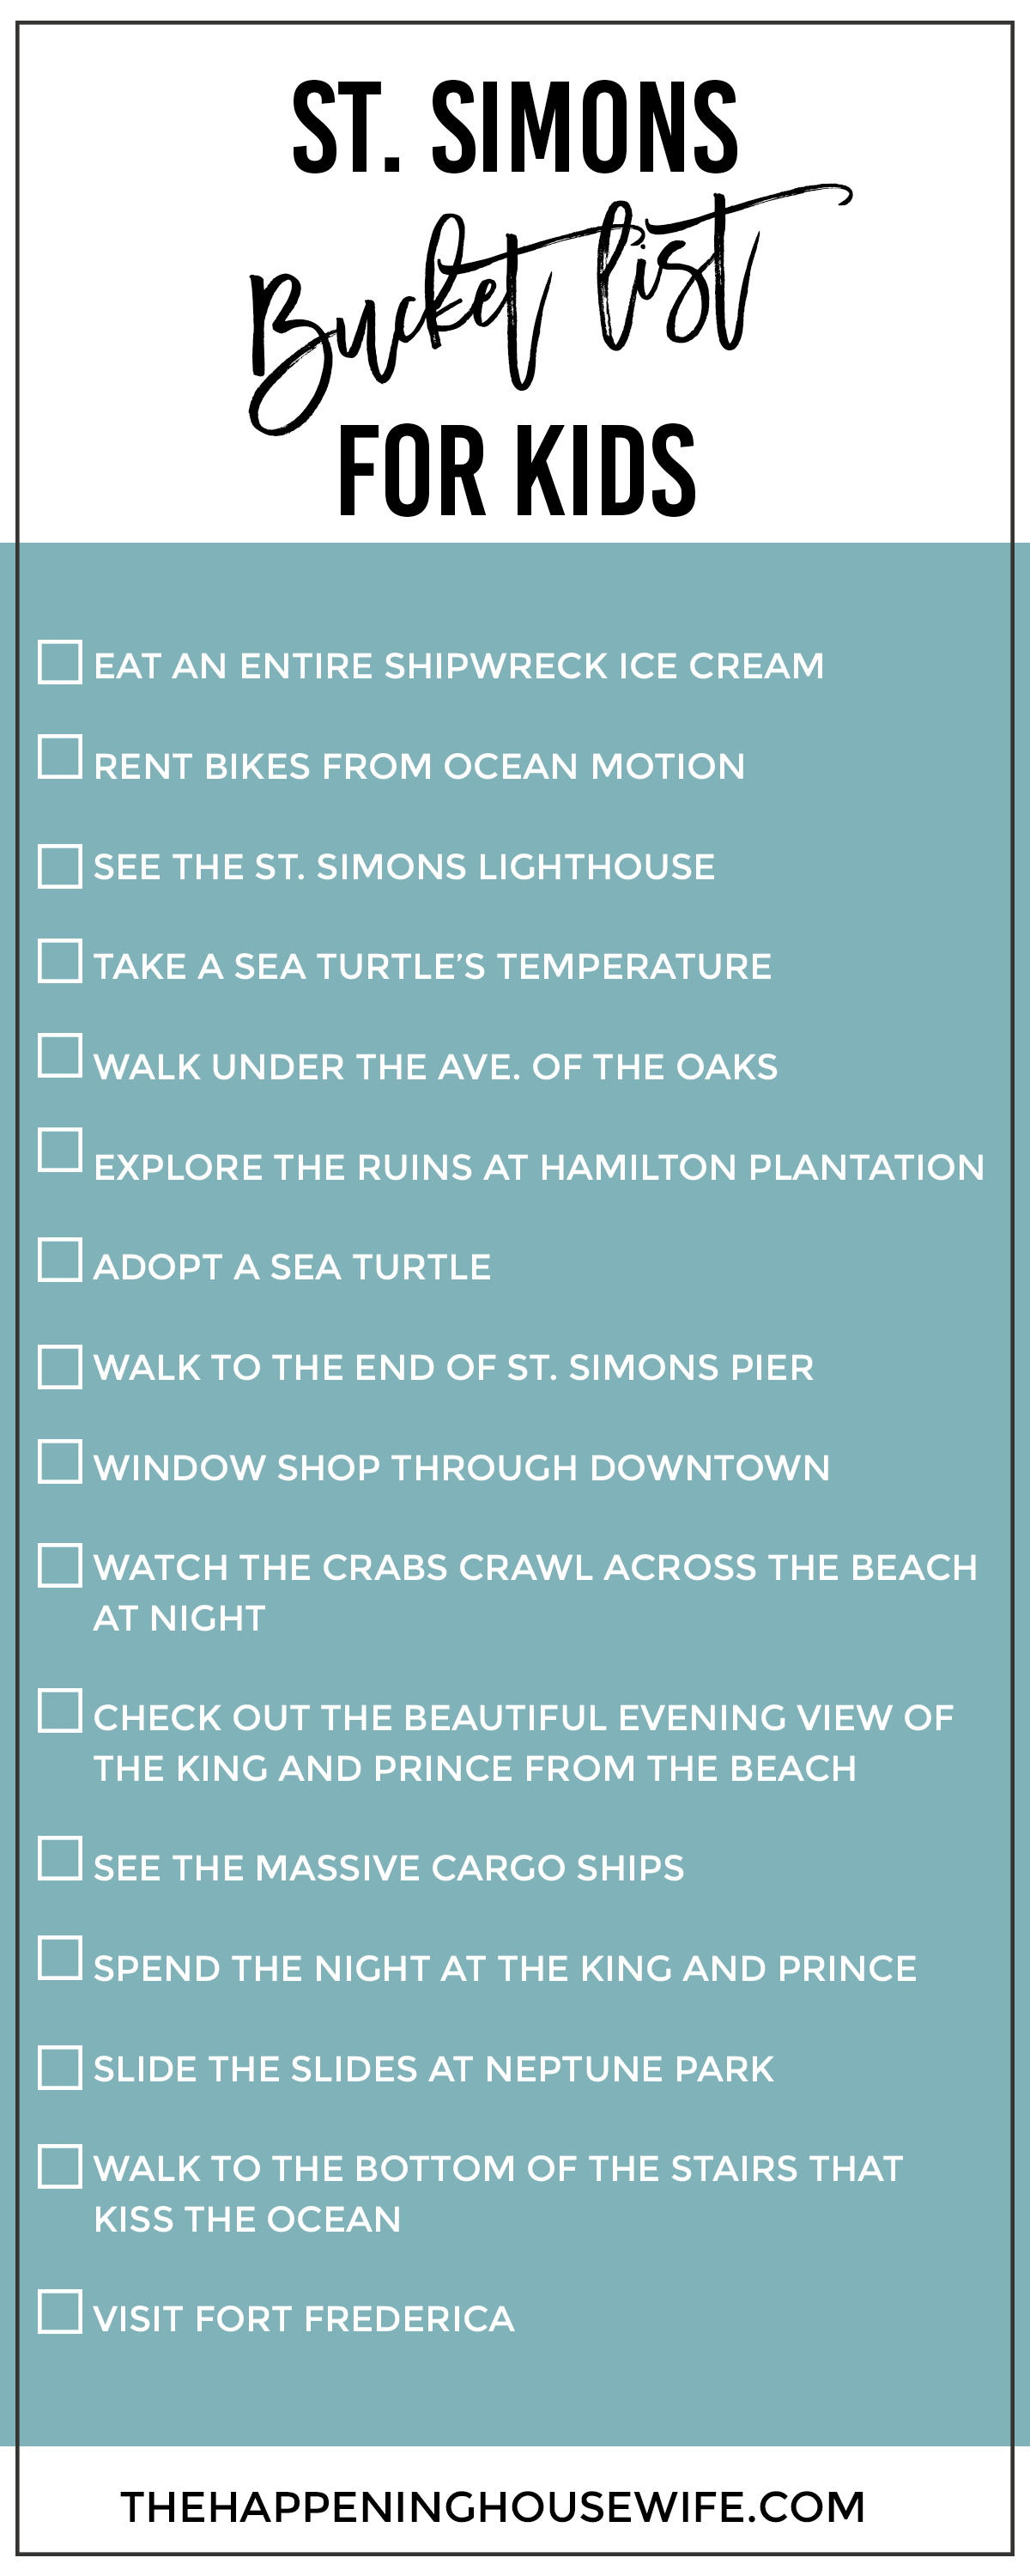 St Simons Bucket List Checklist